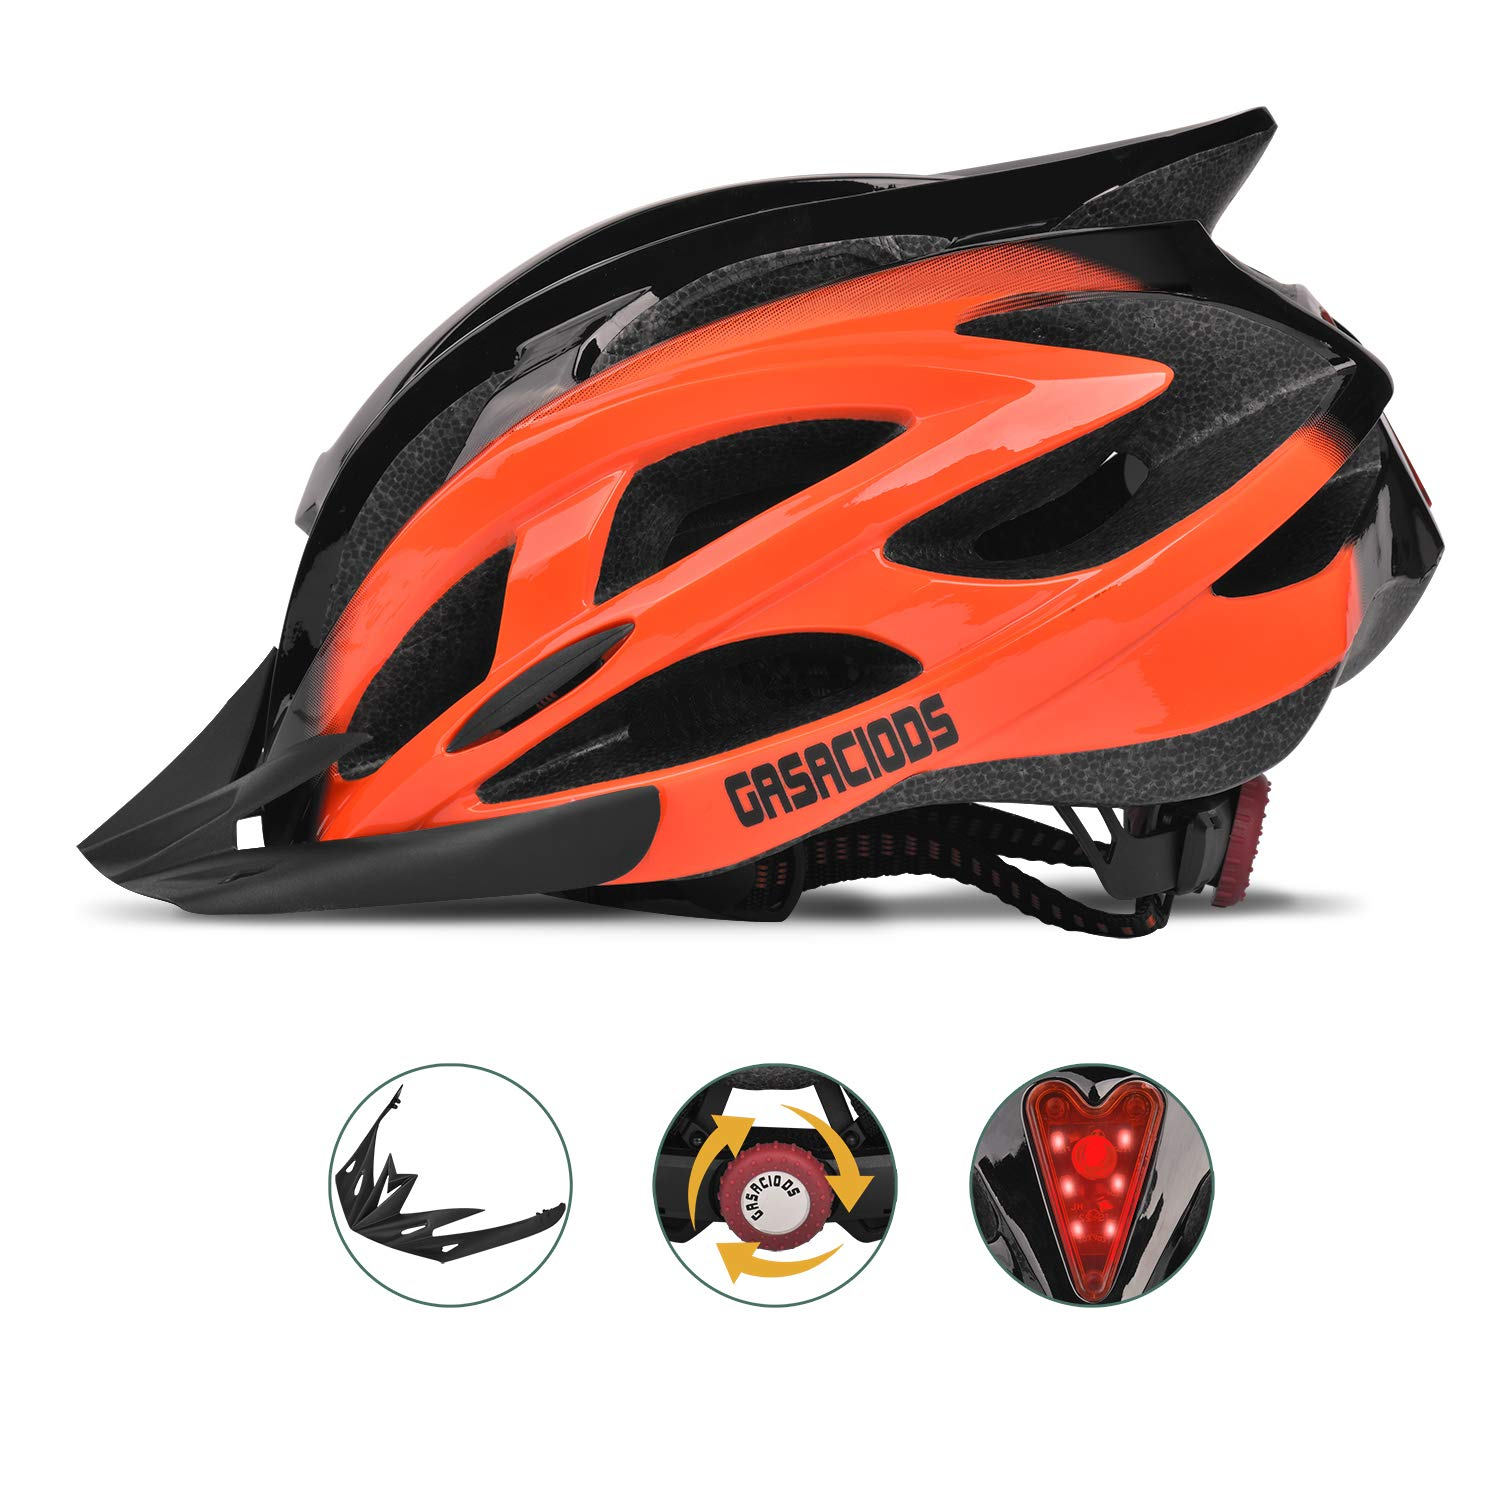 GASACIODS Bike Helmet, CPSC Certified Adjustable Light Bicycle Helmet Specialized Cycling Helmet for Adult Men Women Road and Mountain Bike Helmet with Detachable Visor Rear LED Light